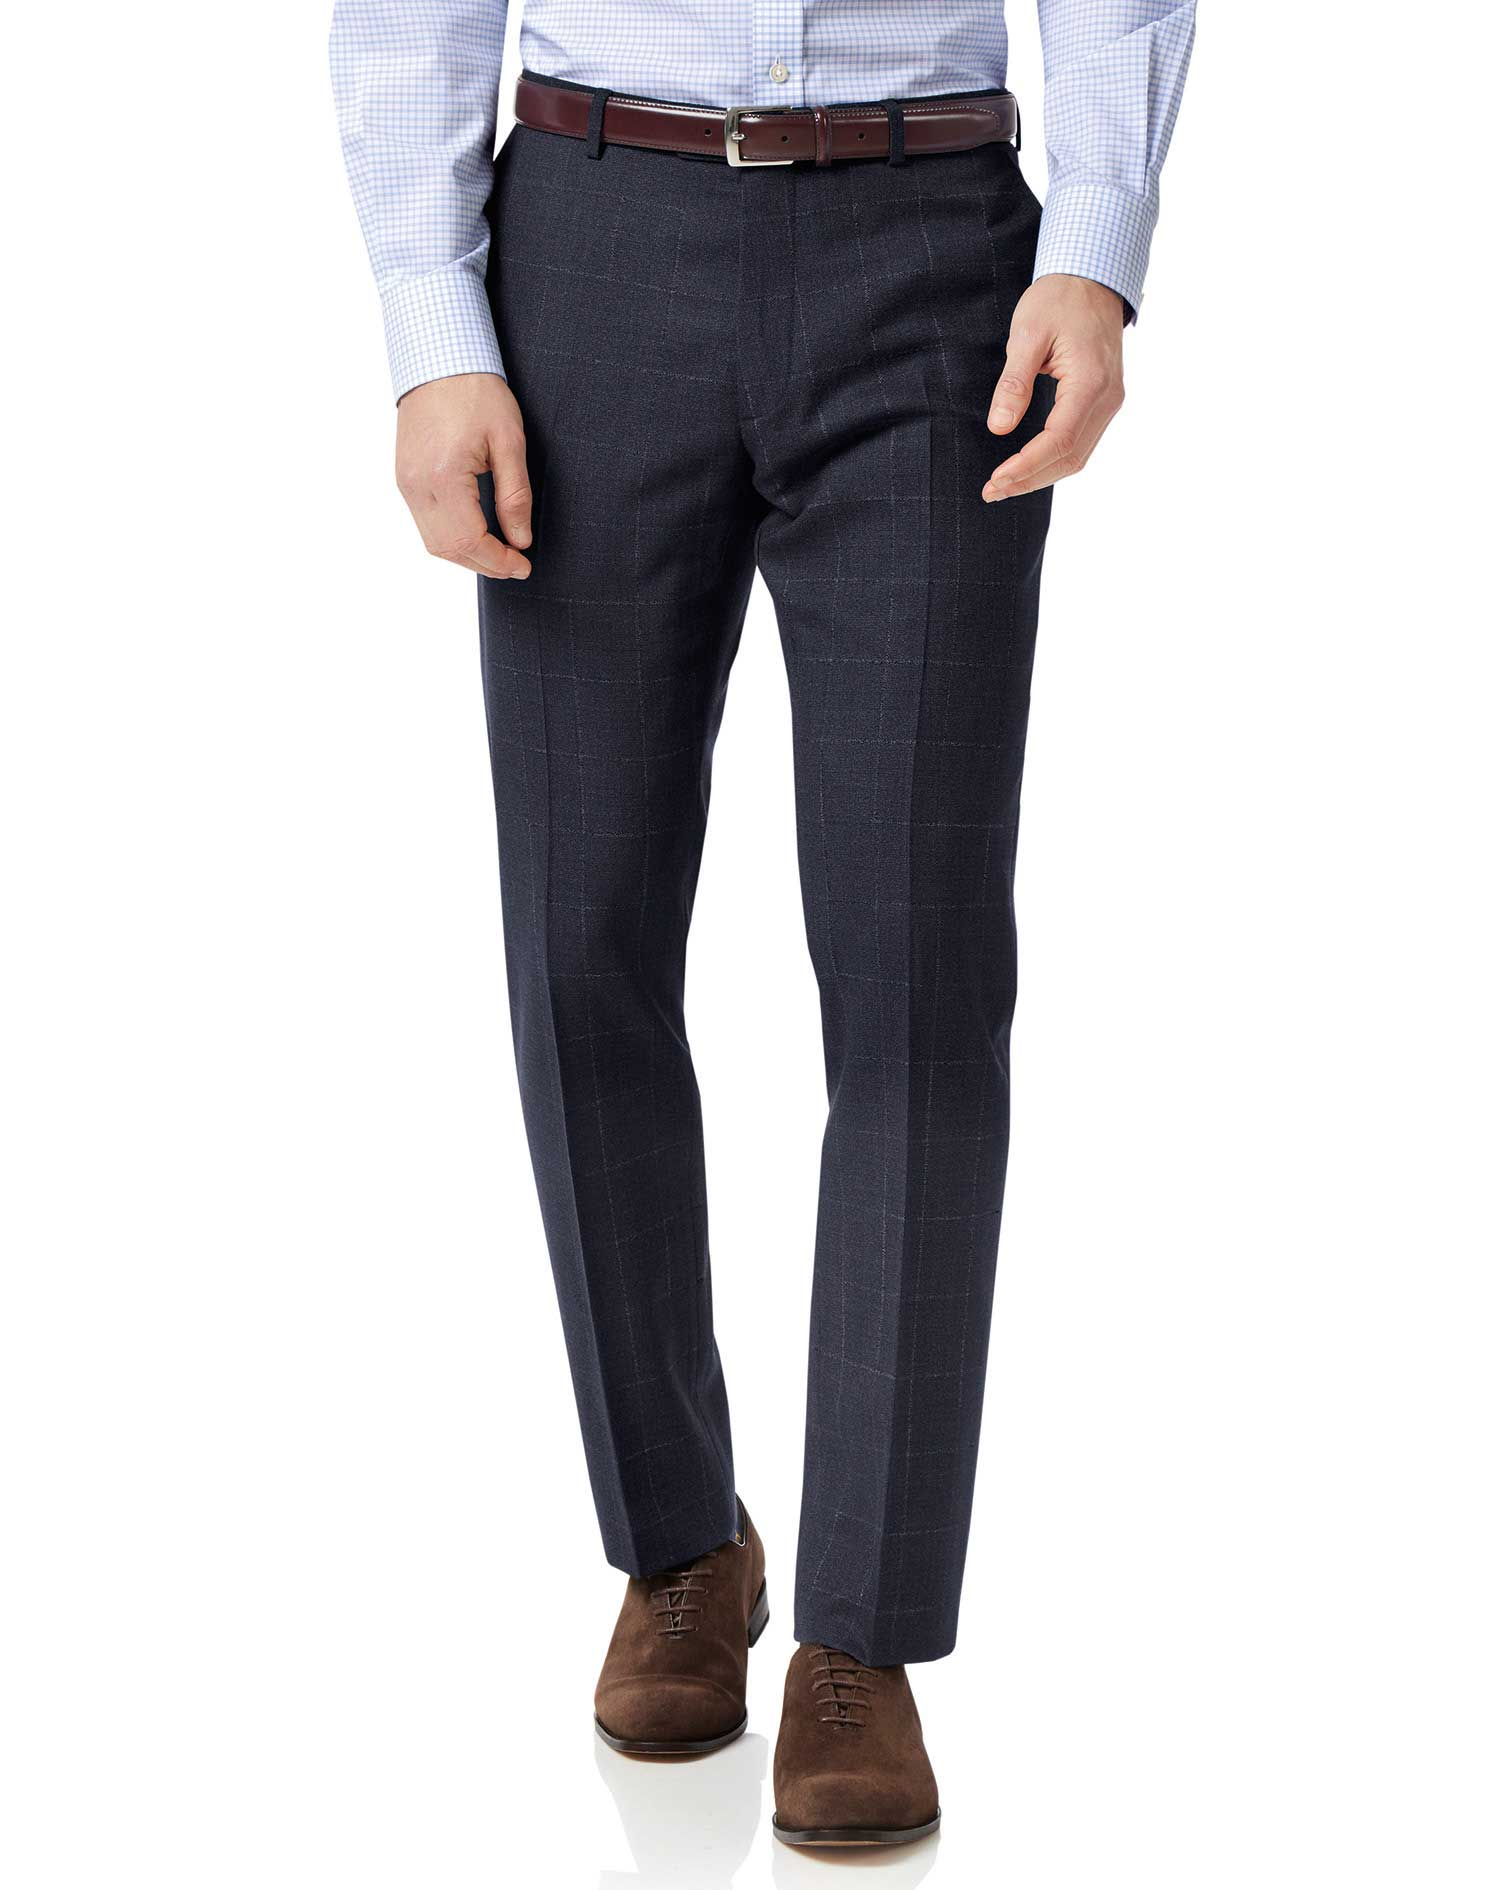 Blue Slim Fit Jaspe Check Business Suit Trousers Size W32 L34 by Charles Tyrwhitt